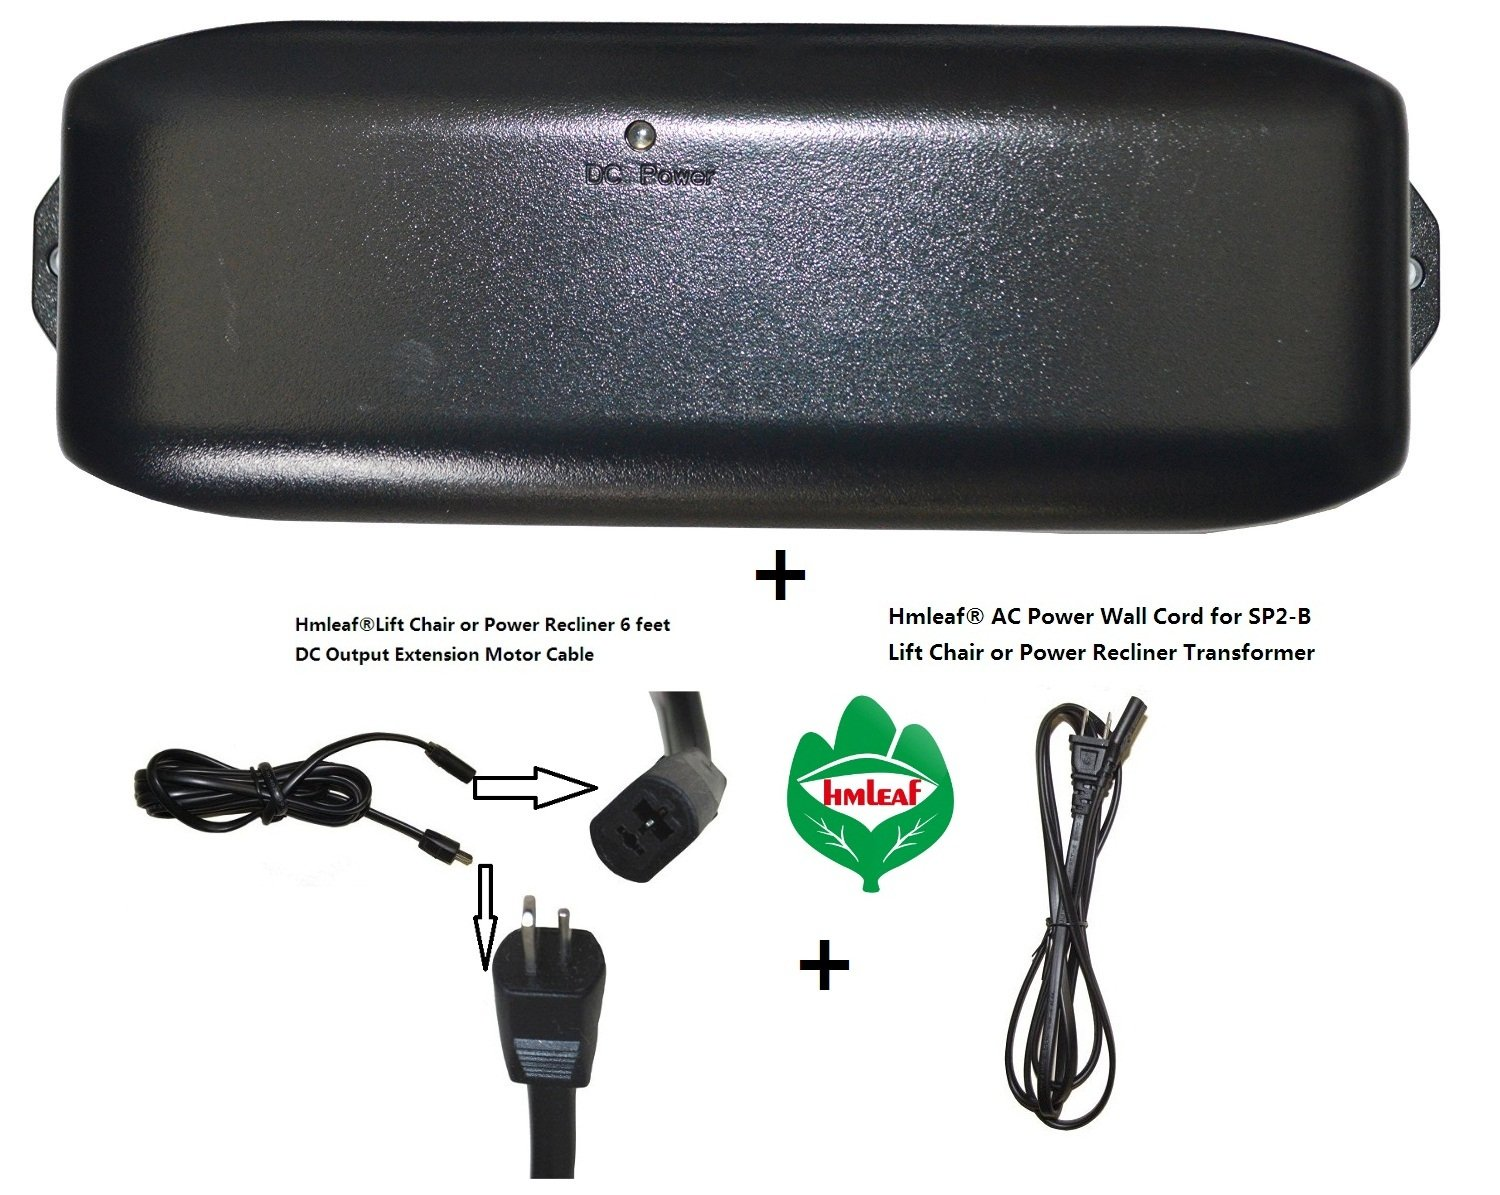 Amazon.com HmleafOkin Power Recliner SP2-B or Lift Chair Power Supply Transformer with Battery Backup+AC Power cord+Motor cable Kitchen u0026 Dining  sc 1 st  Amazon.com & Amazon.com: HmleafOkin Power Recliner SP2-B or Lift Chair Power ... islam-shia.org